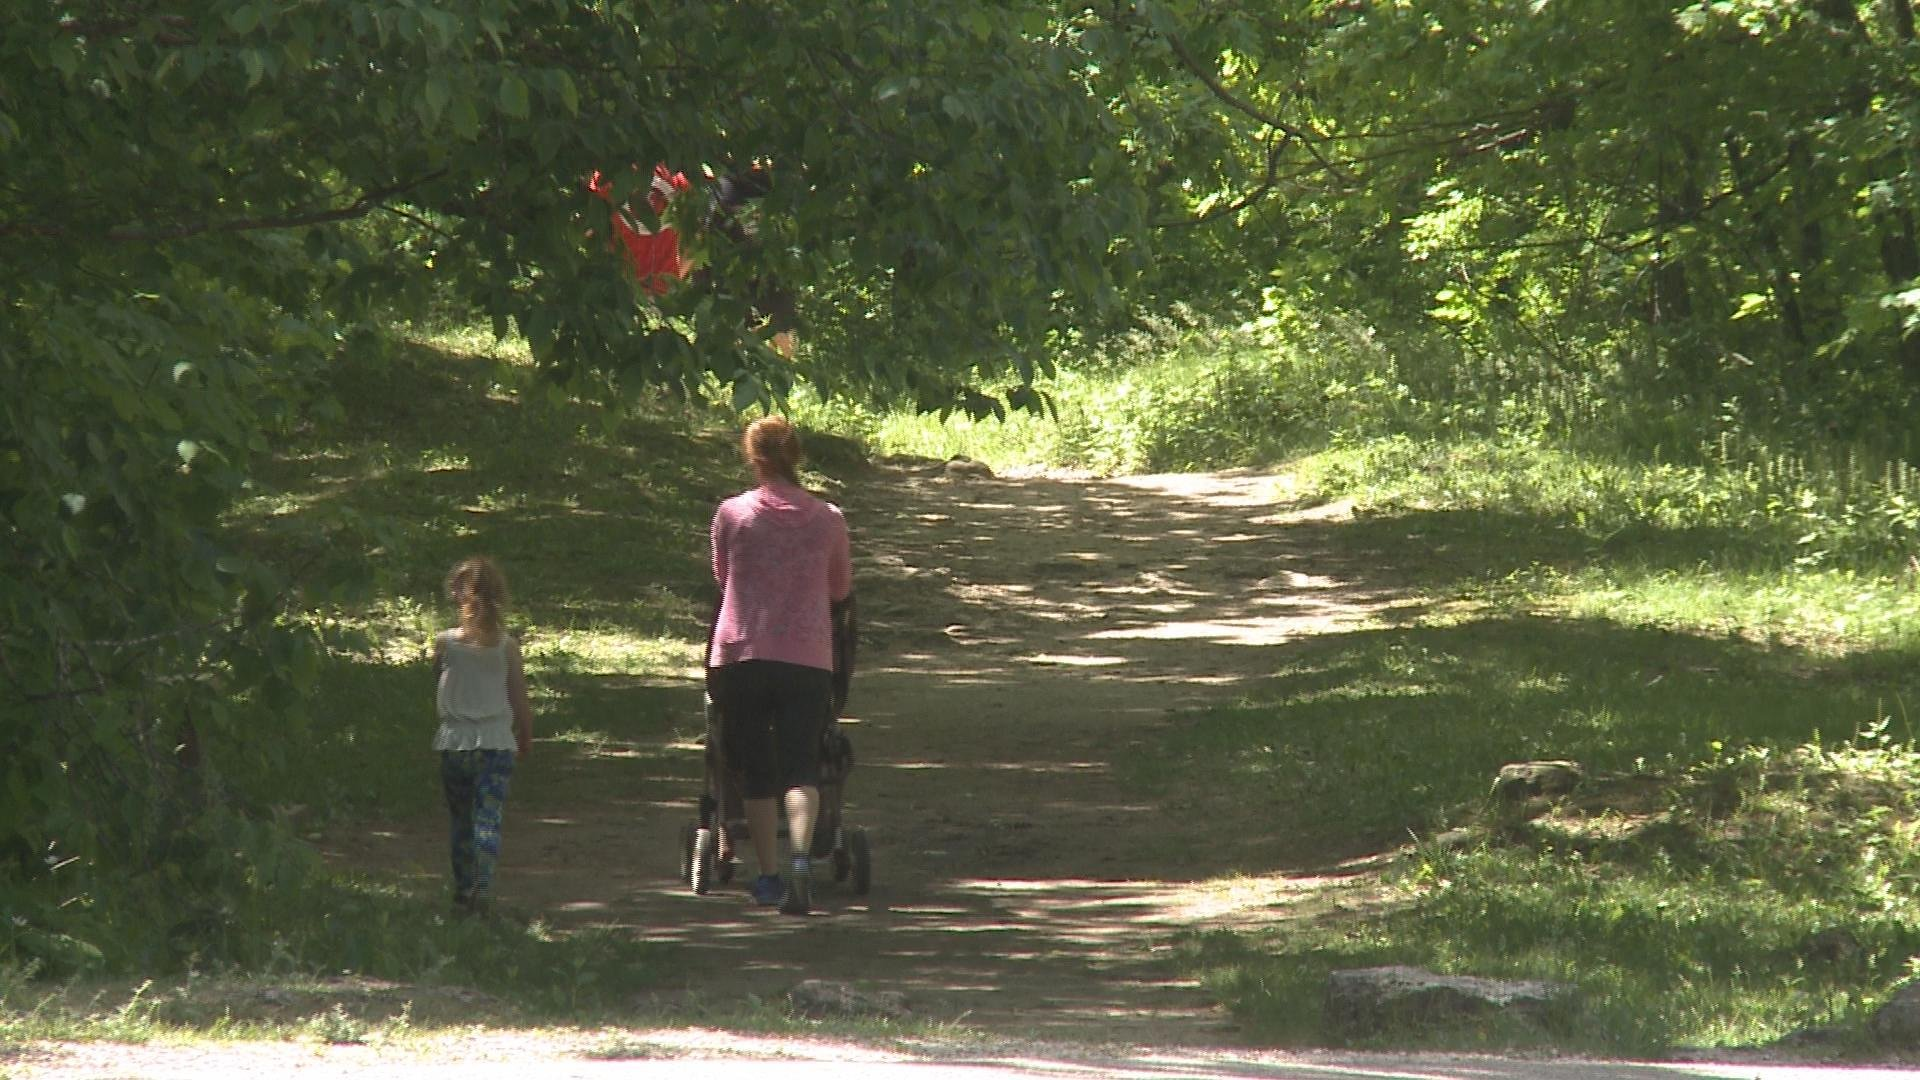 Authorities: Girl hurt in 60-foot fall at Iowa state park